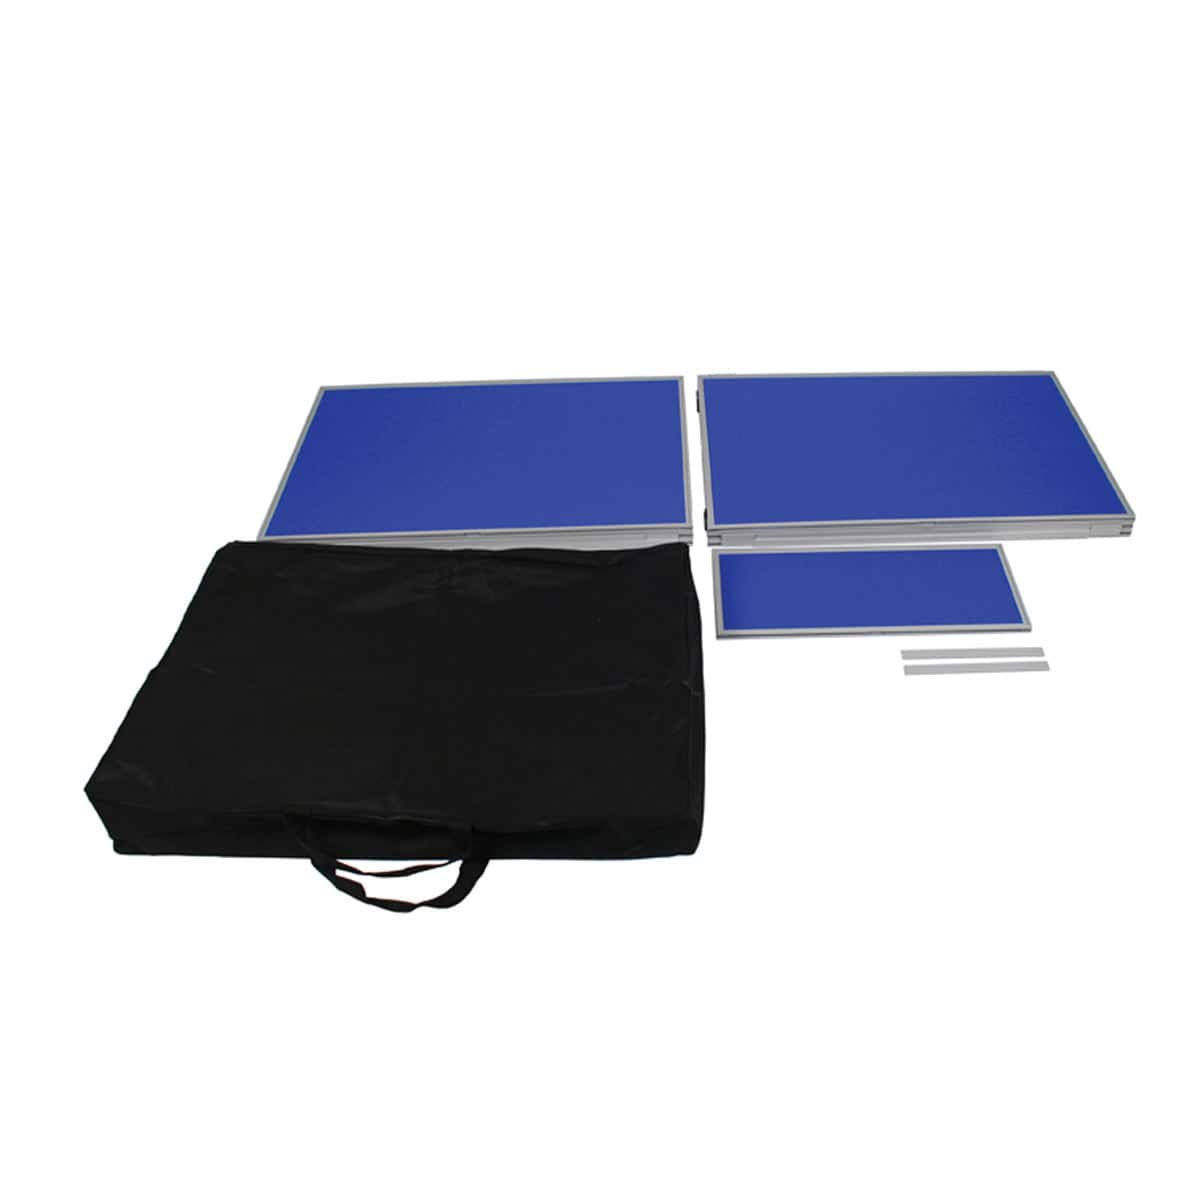 Blue panel kit with black carry bag